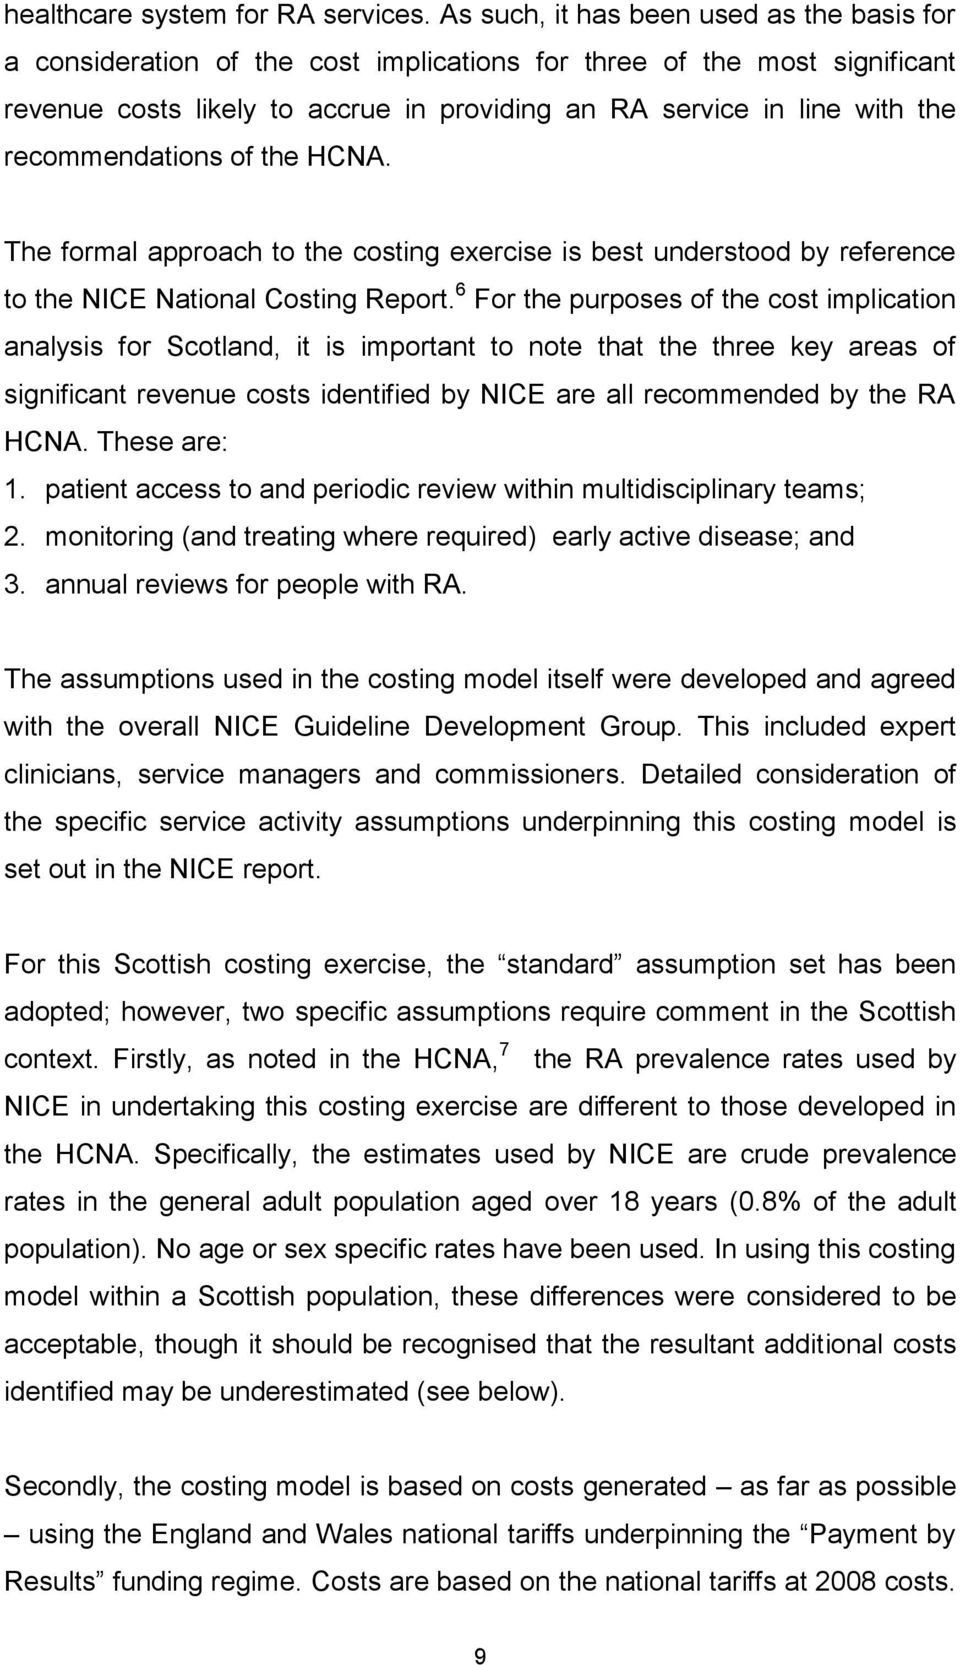 recommendations of the HCNA. The formal approach to the costing exercise is best understood by reference to the NICE National Costing Report.